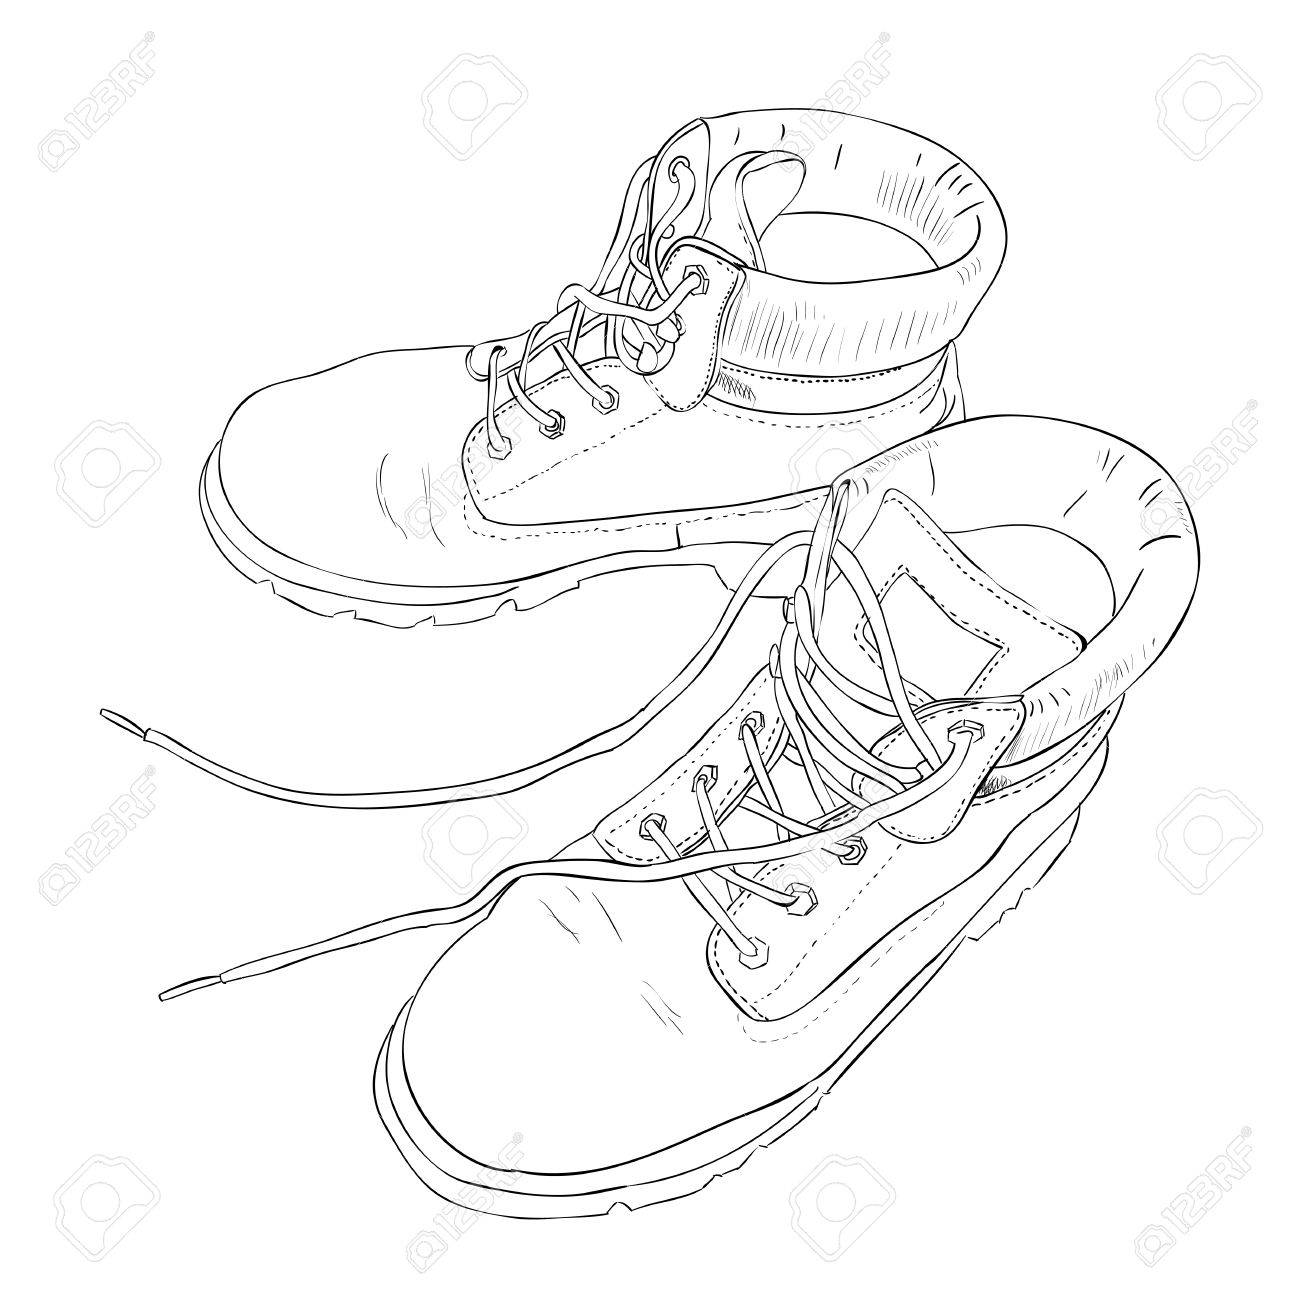 1300x1300 Hand Drawn Sketch With Army Boots. Vector Illustration Royalty